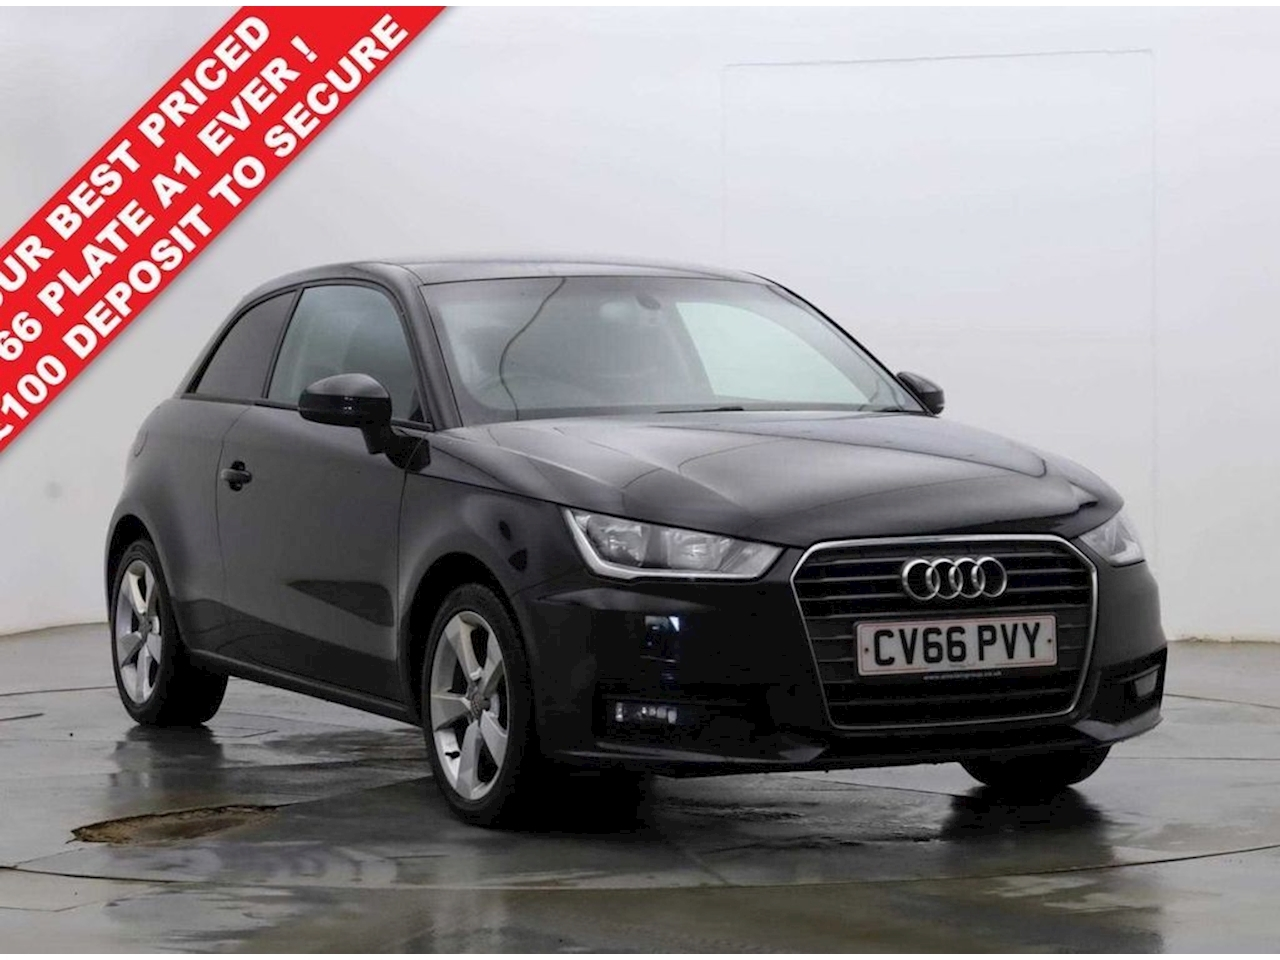 Audi A1 Sport Hatchback 1.6 Manual Diesel